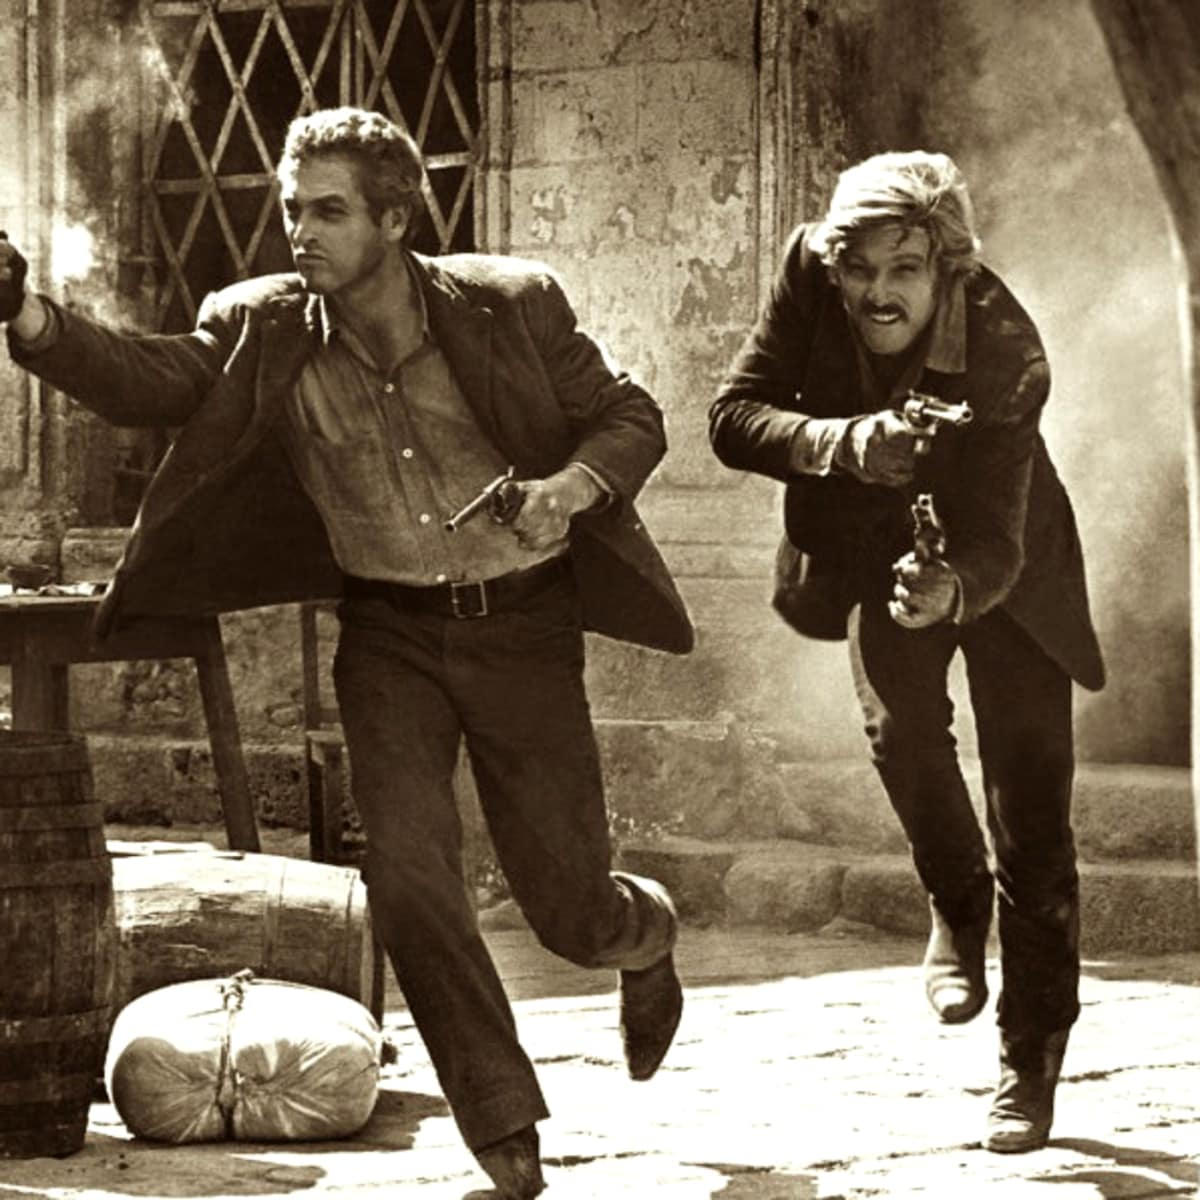 Weekend events Butch Cassidy Sundance Kid movie still